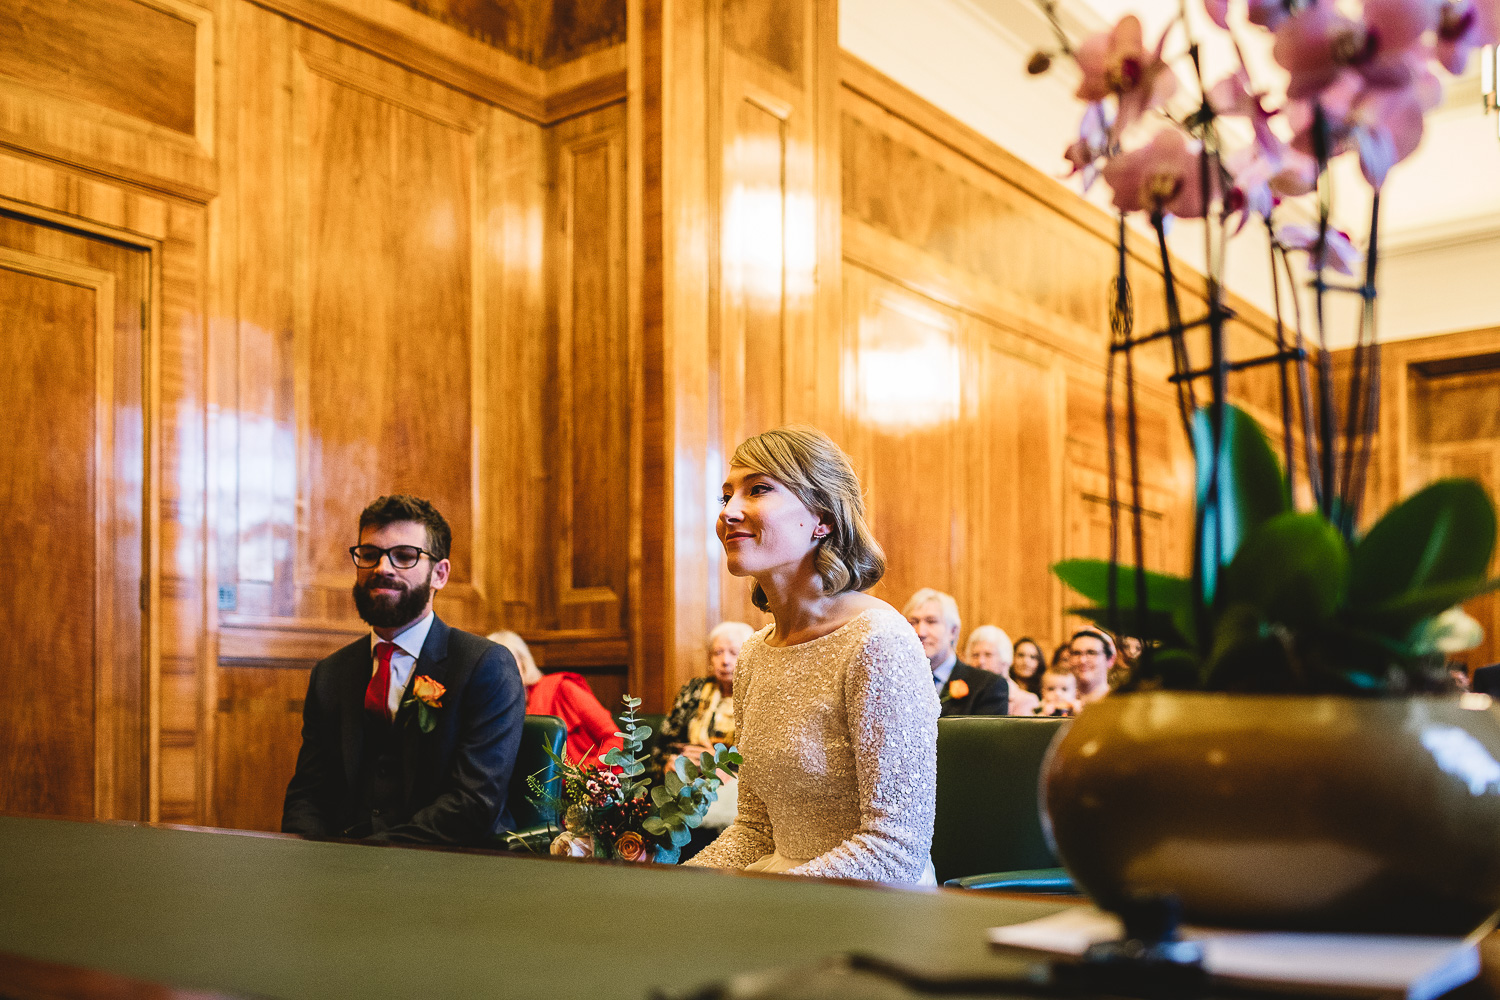 Clapton Country Club and Hackney Town Hall Wedding-22.jpg